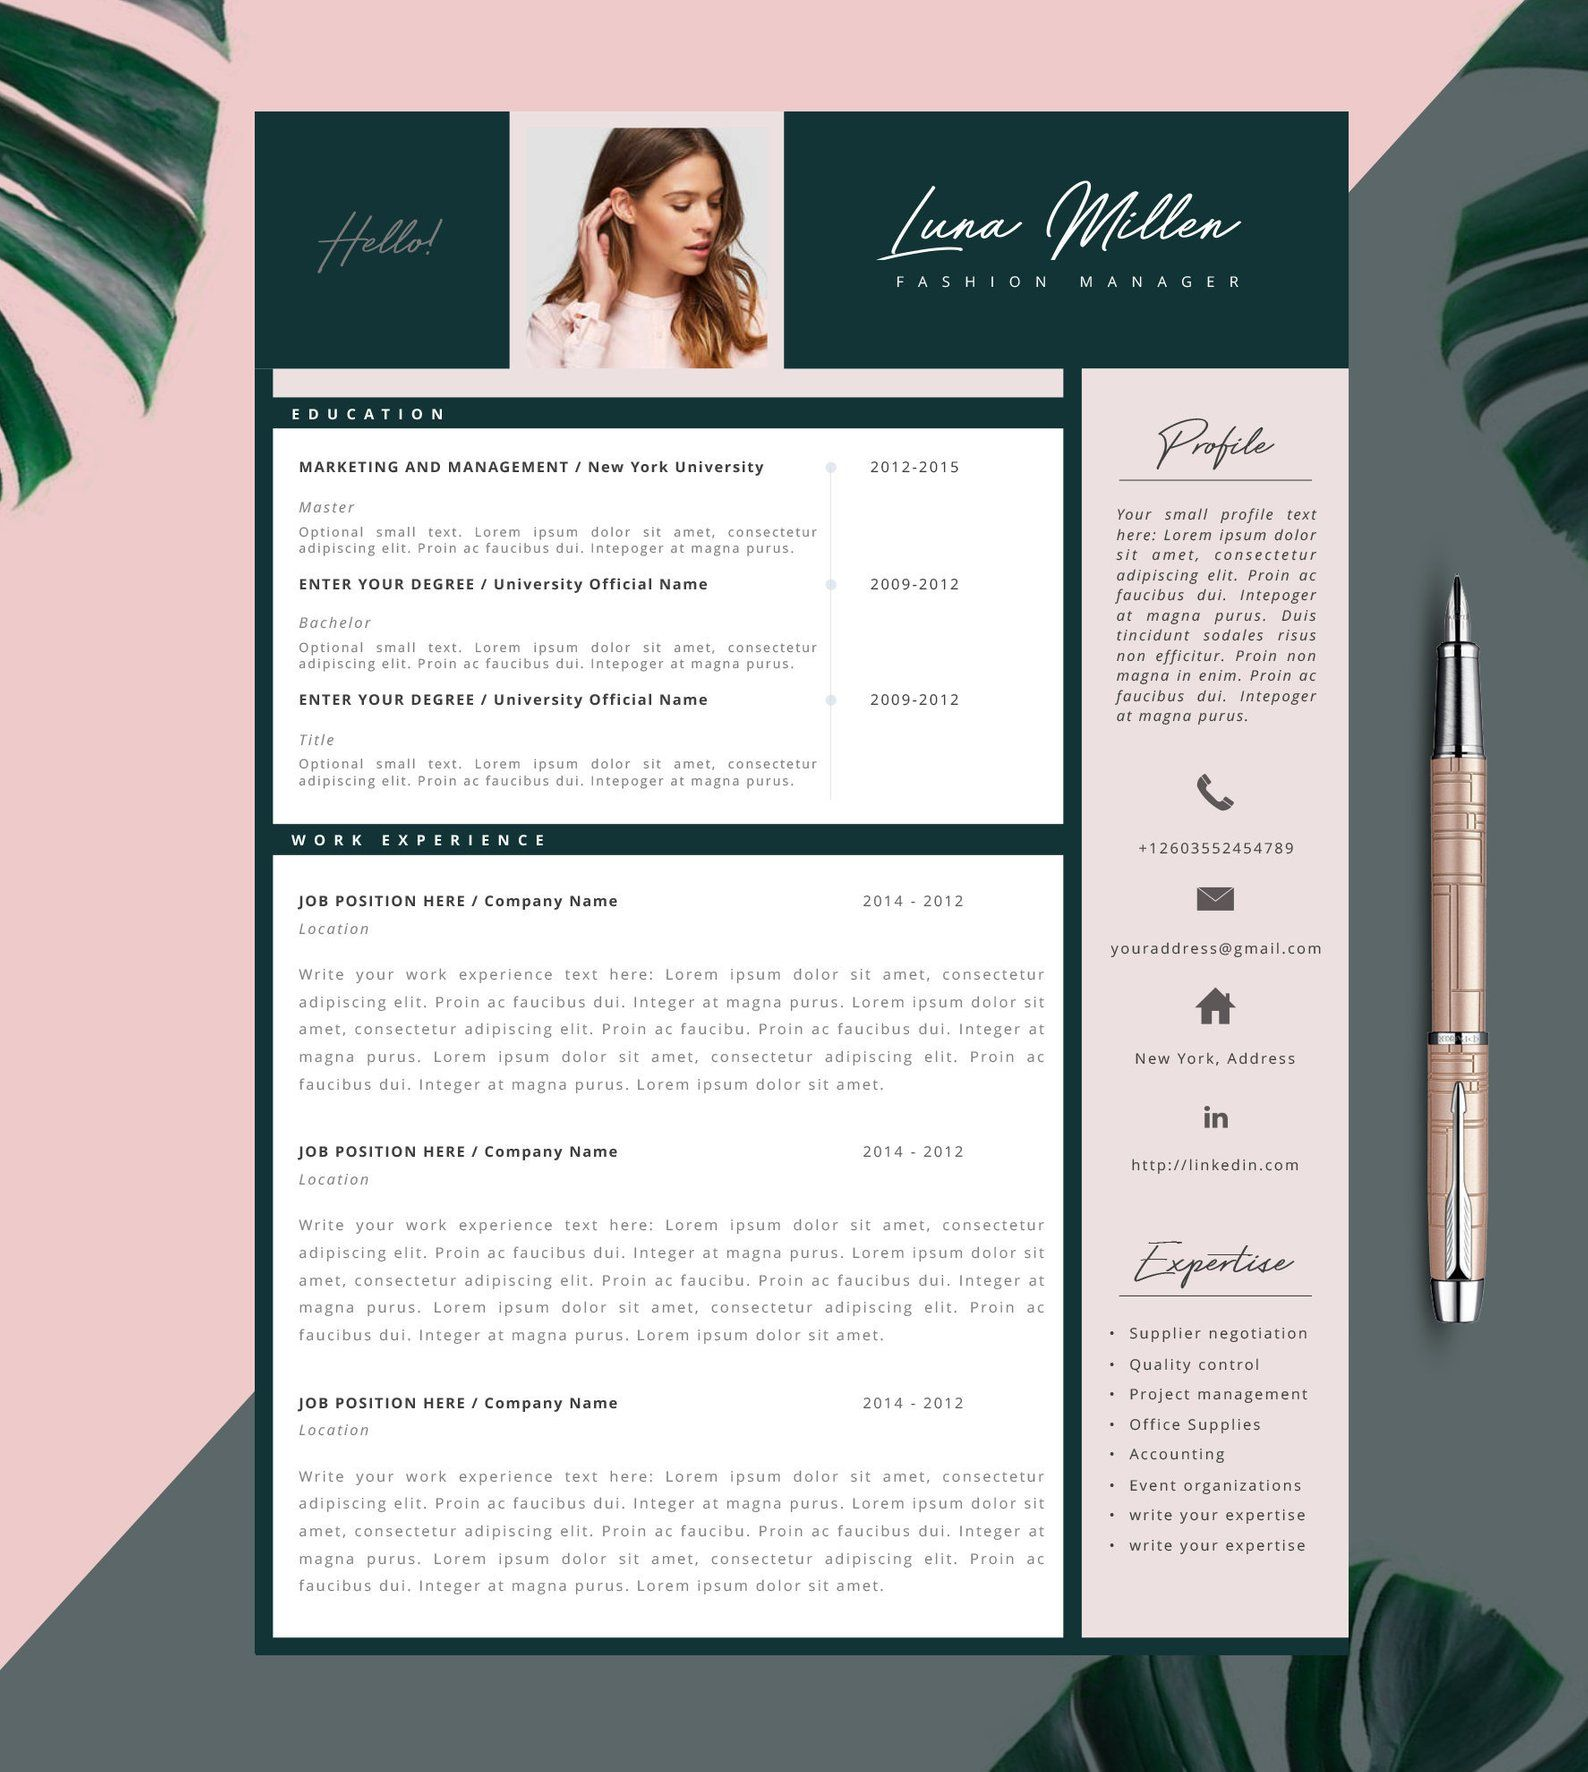 Fashion Resume, CV Template, Resume Template, Creative Resume, 2 Page Resume, Instant Download, Editable in MS Word and Pages - Lettre de couverture